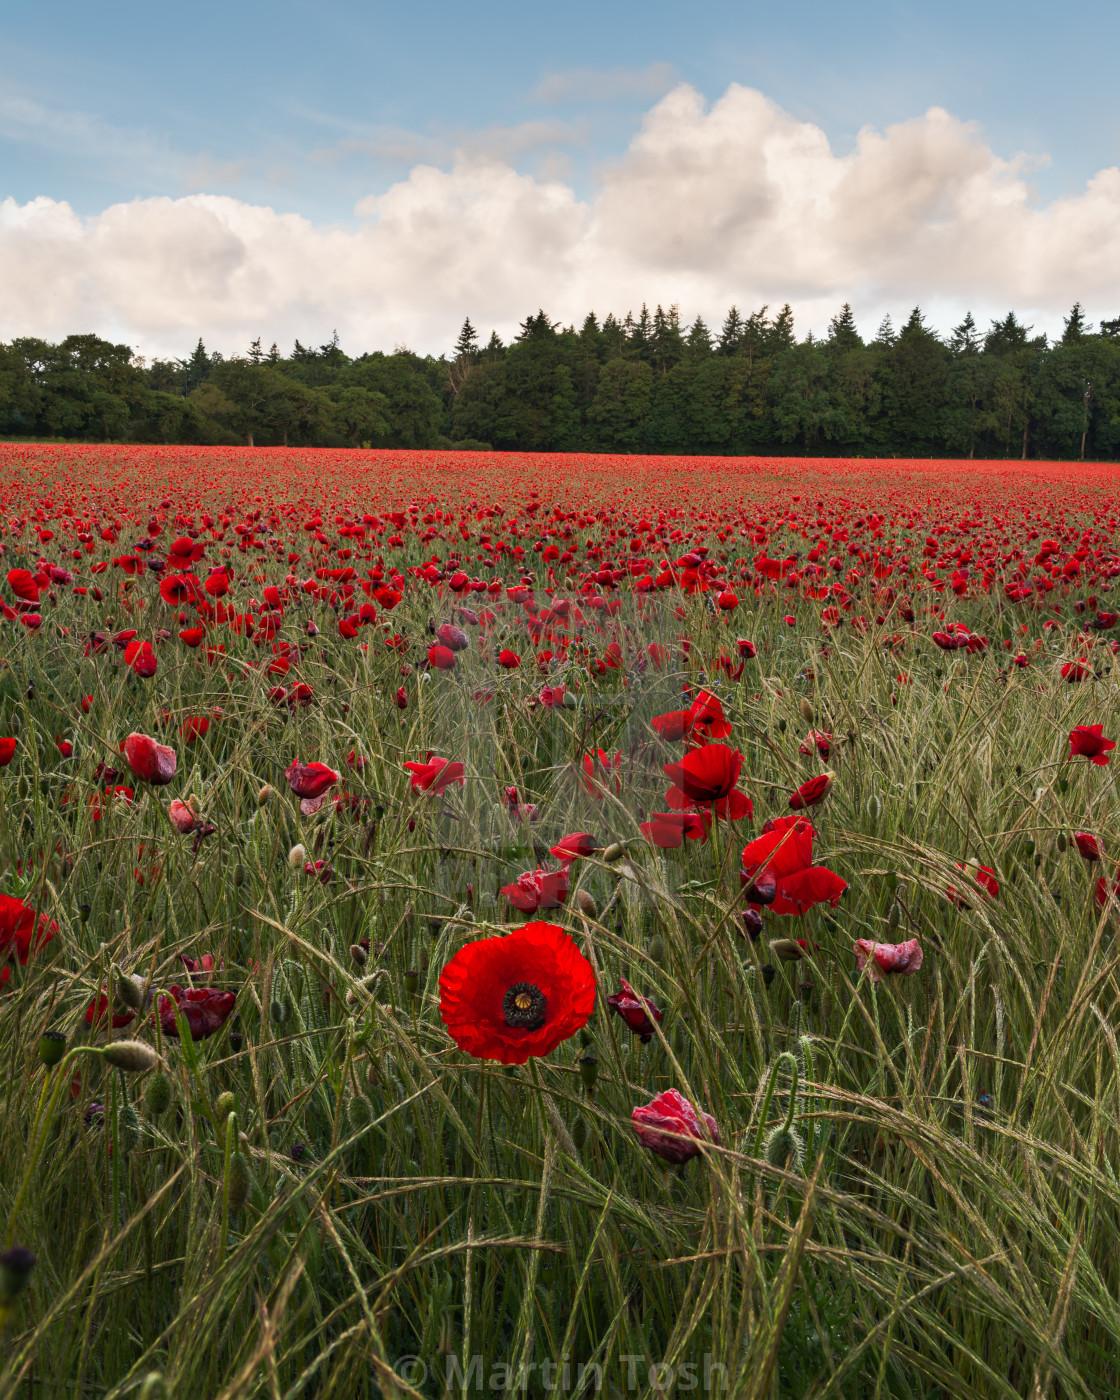 """""""Norolk poppy field and grasses with pine trees and cloudy blue s"""" stock image"""